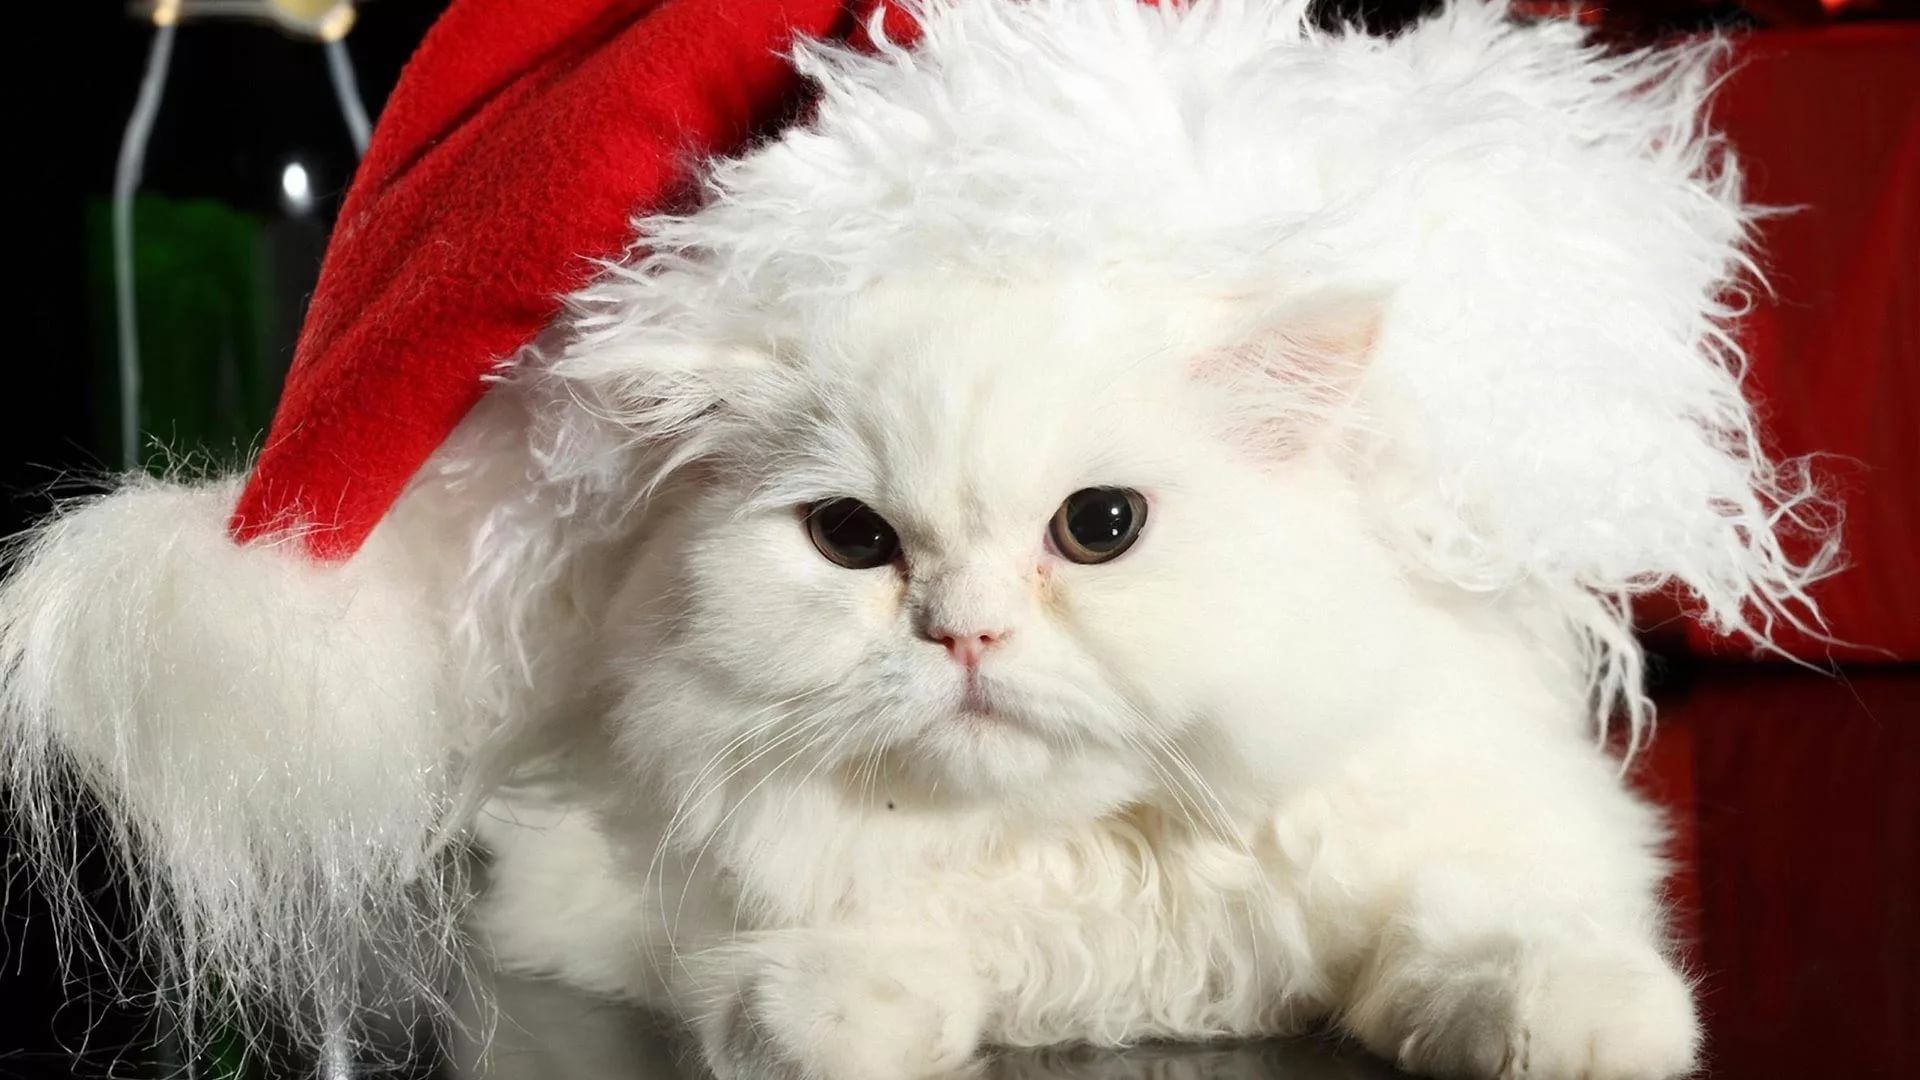 Christmas Cat wallpaper picture hd